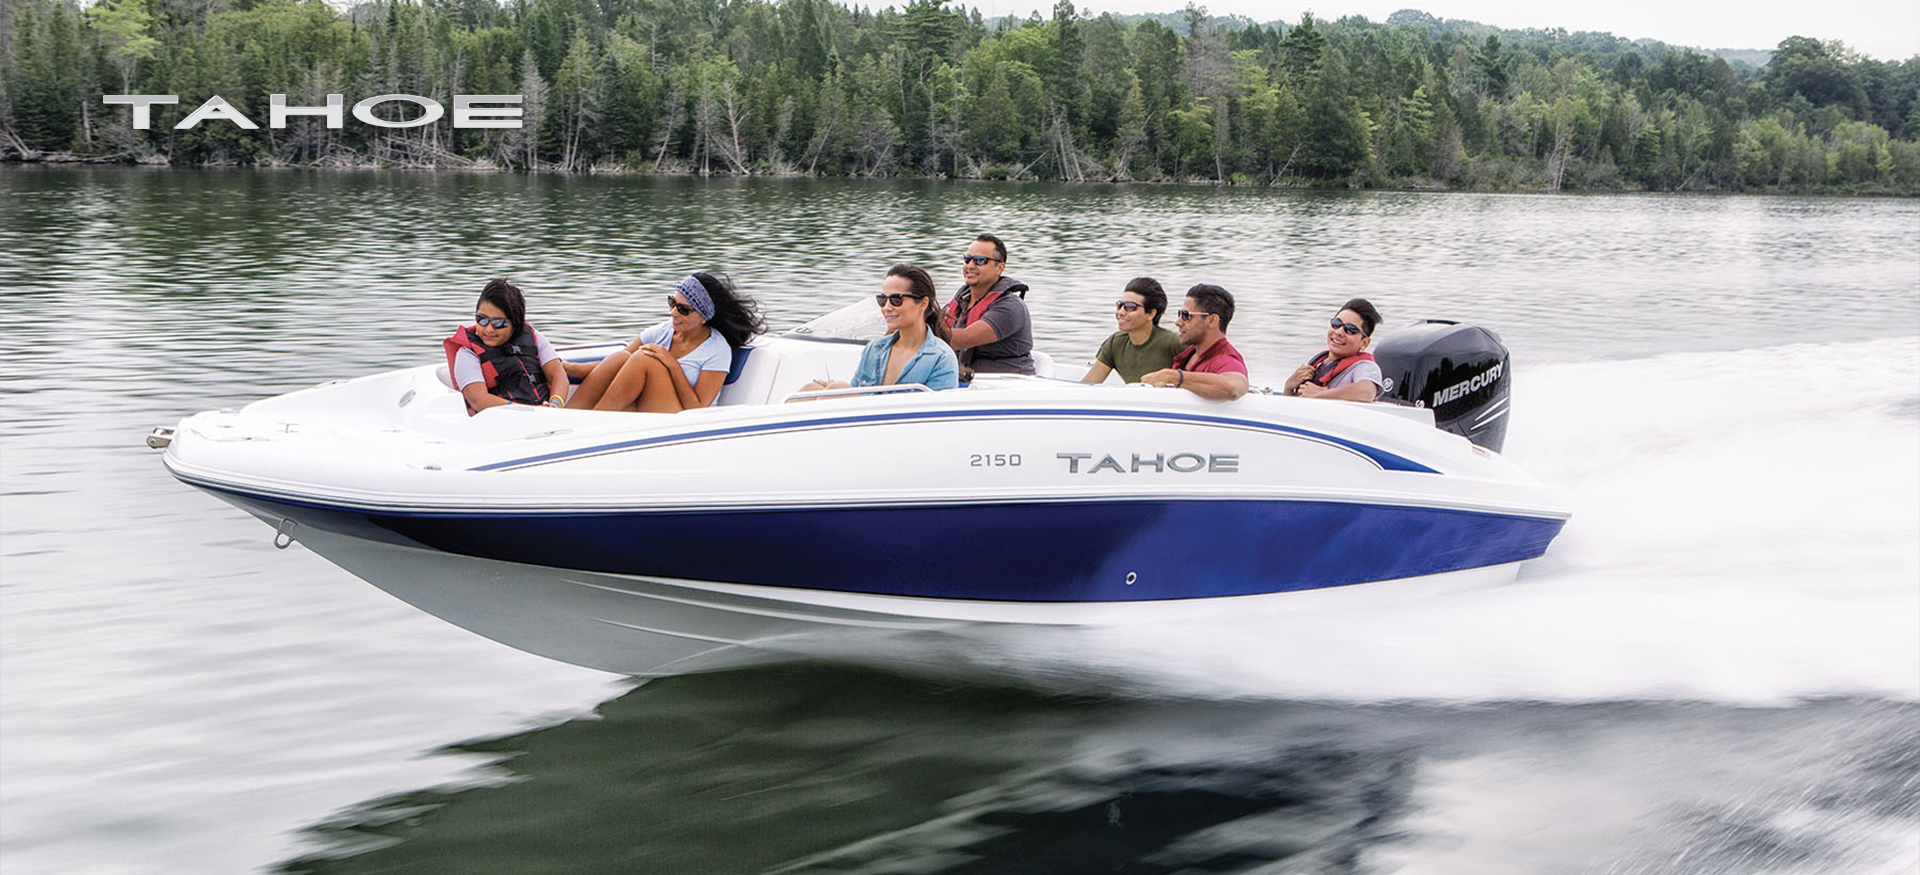 Tahoe 2150 family boating